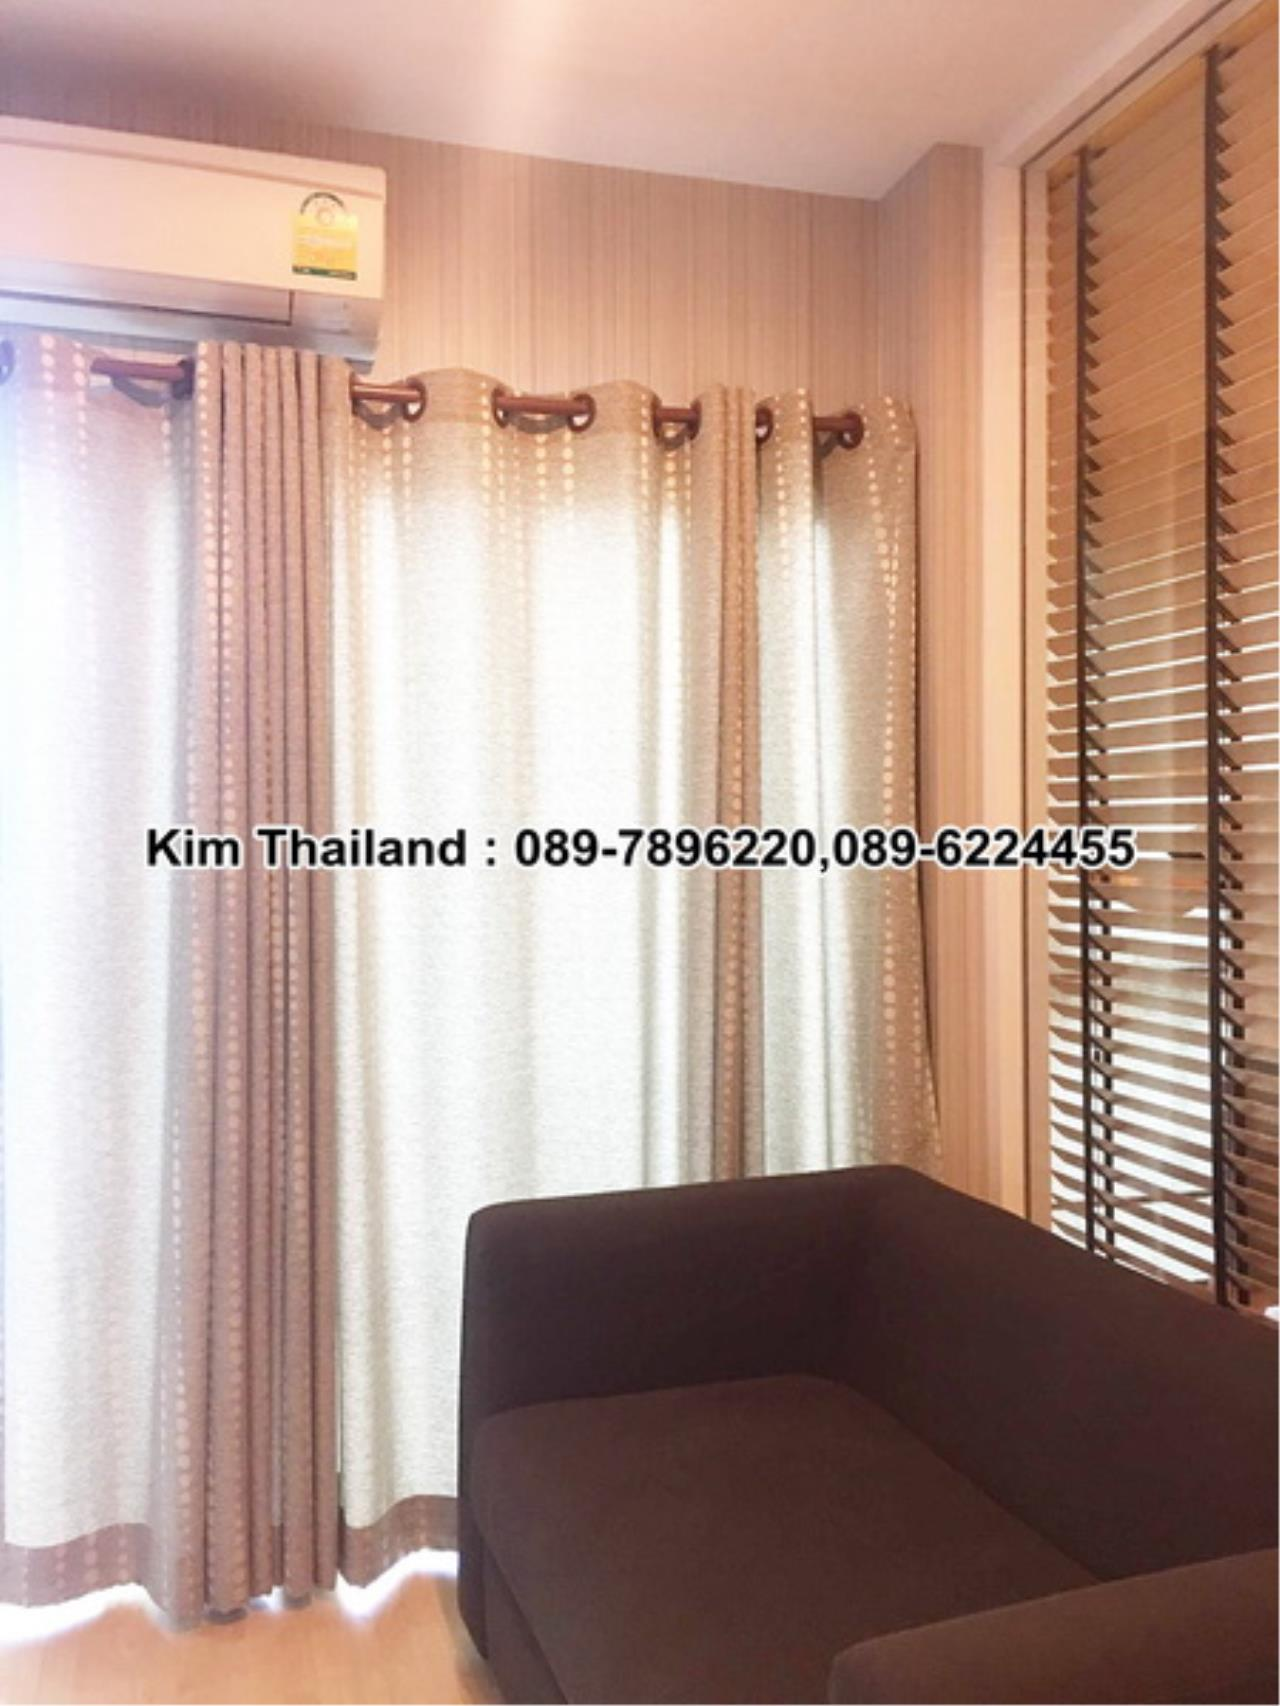 BKKcondorental Agency's For rent, Condo The Parkland Grand Asoke-Petchaburi., Area 35 sq.m. 1 bedroom. Rental 16,500 THB per month. 5